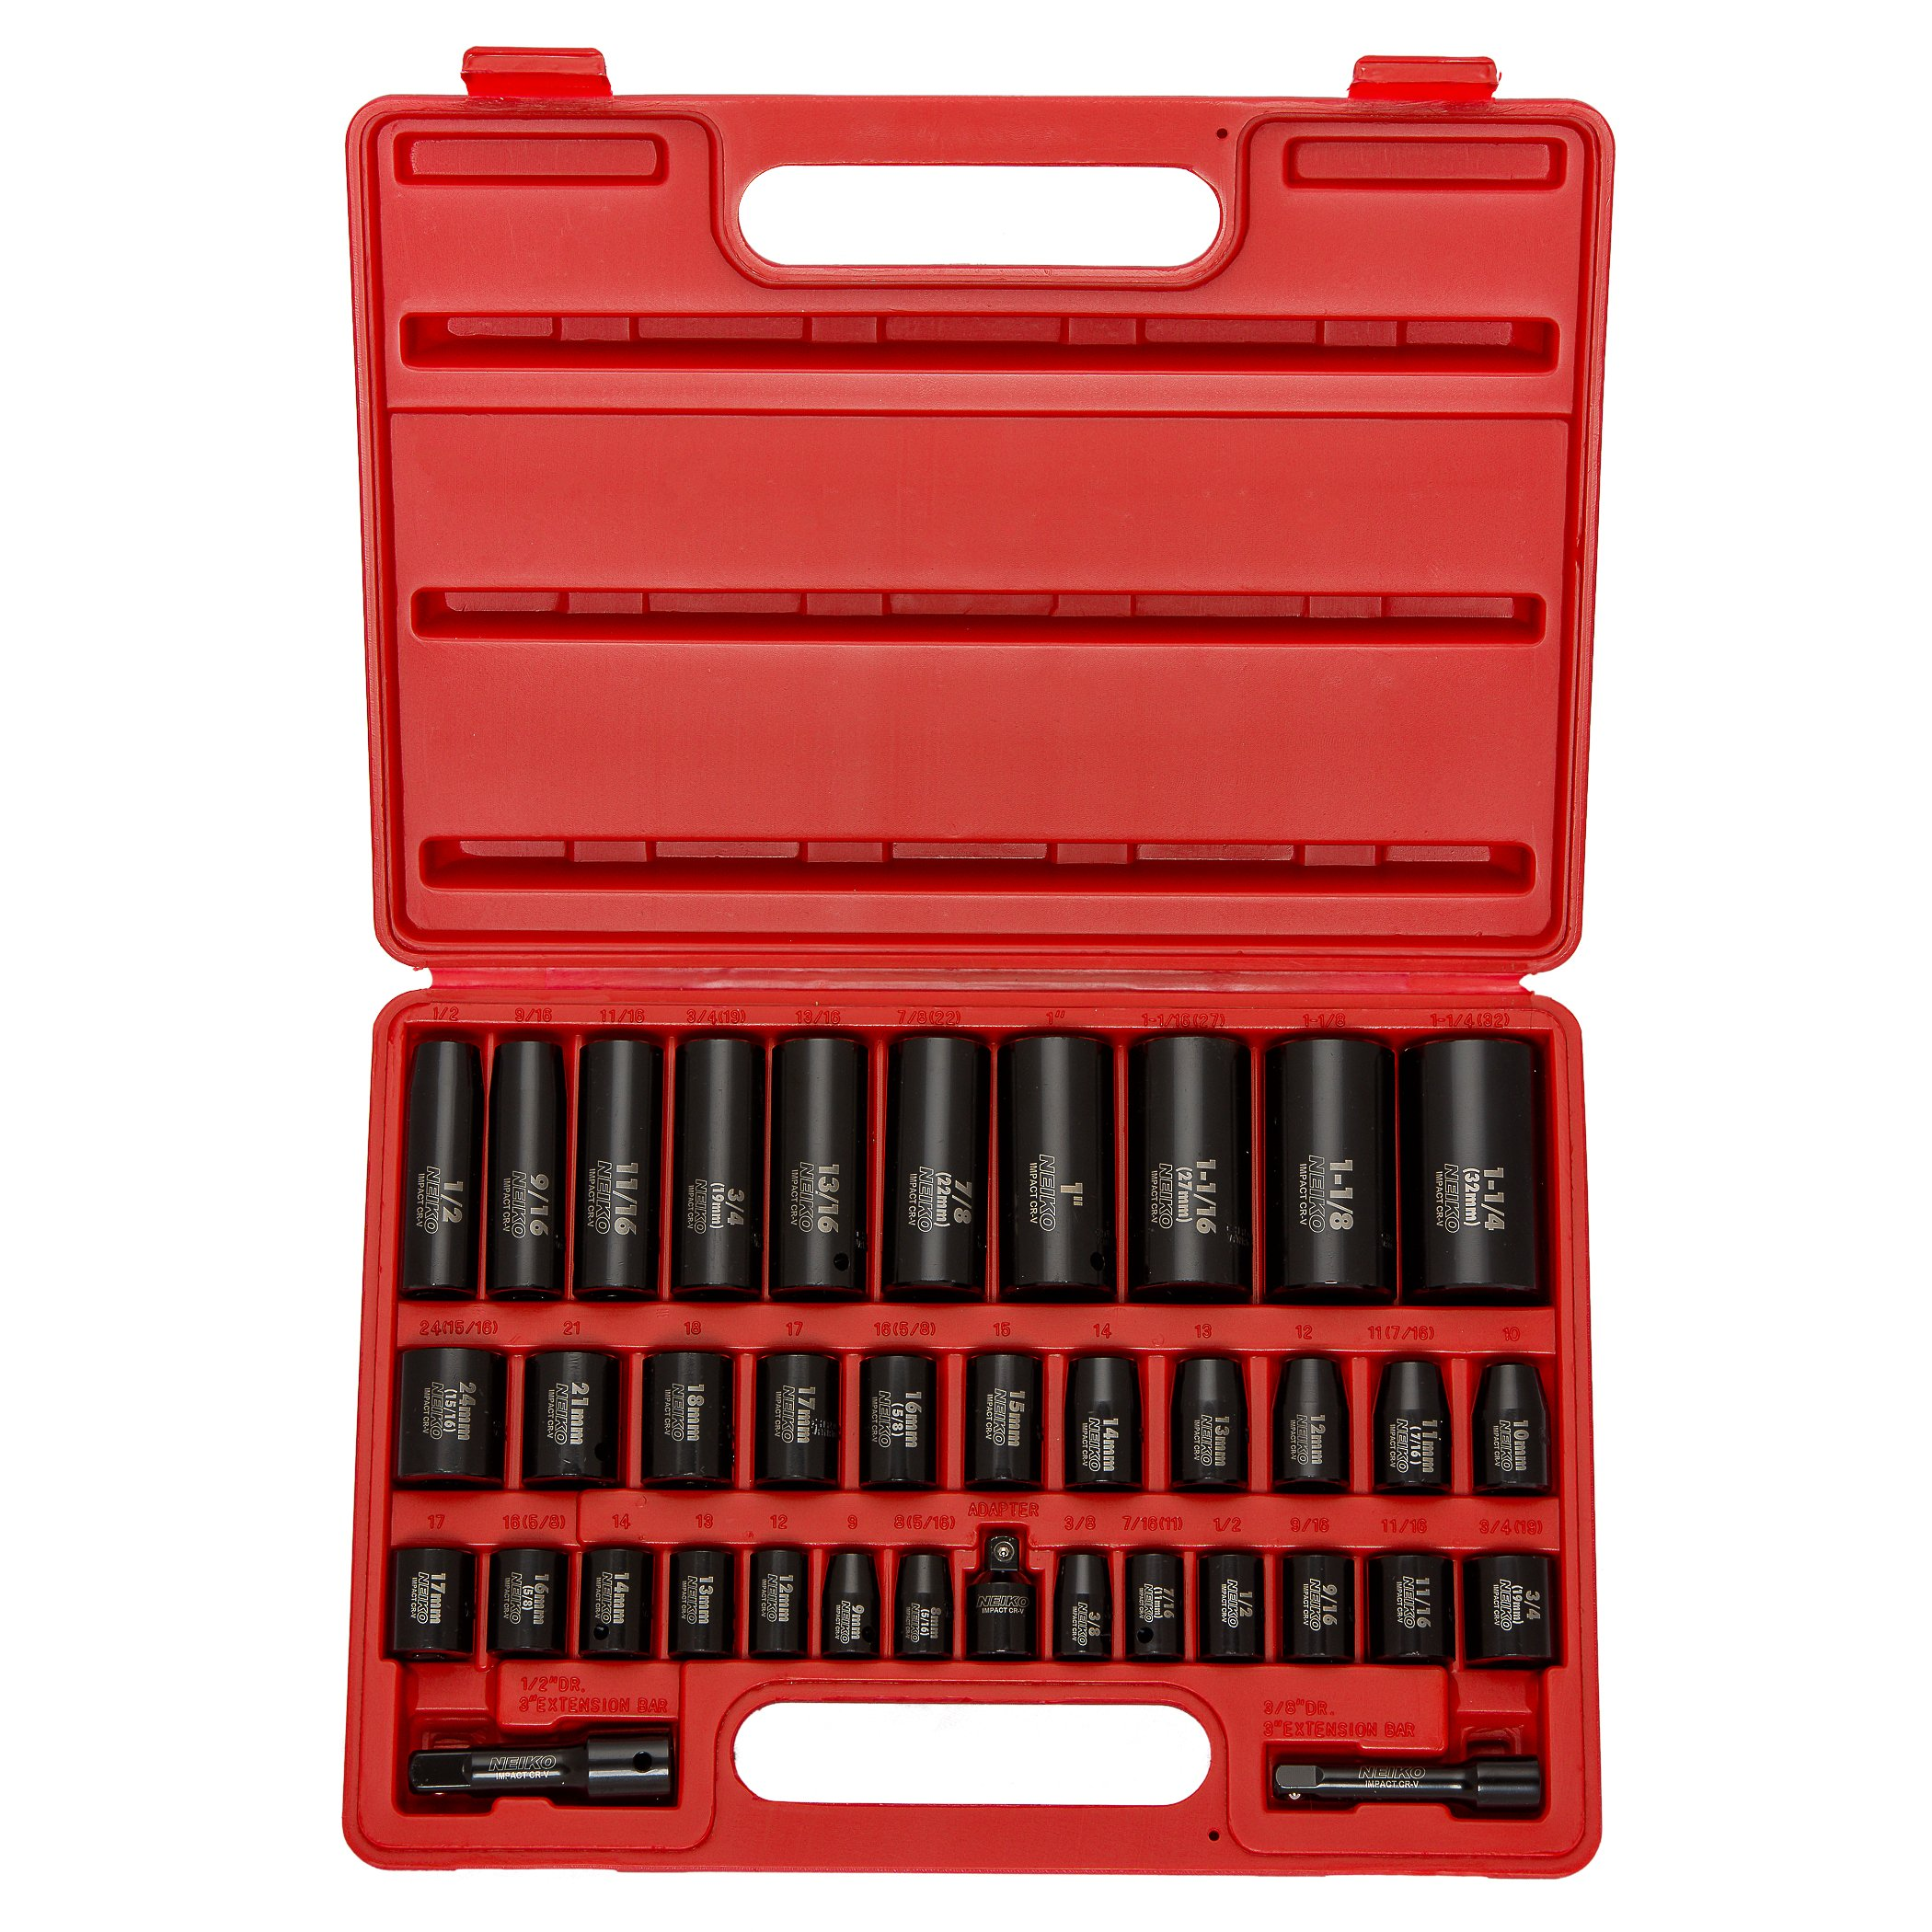 Neiko 02443A Complete 3/8'' and 1/2'' Drive Impact Socket Set, 38 Piece   CR-V Steel, 6-Point   SAE & Metric, Deep & Shallow